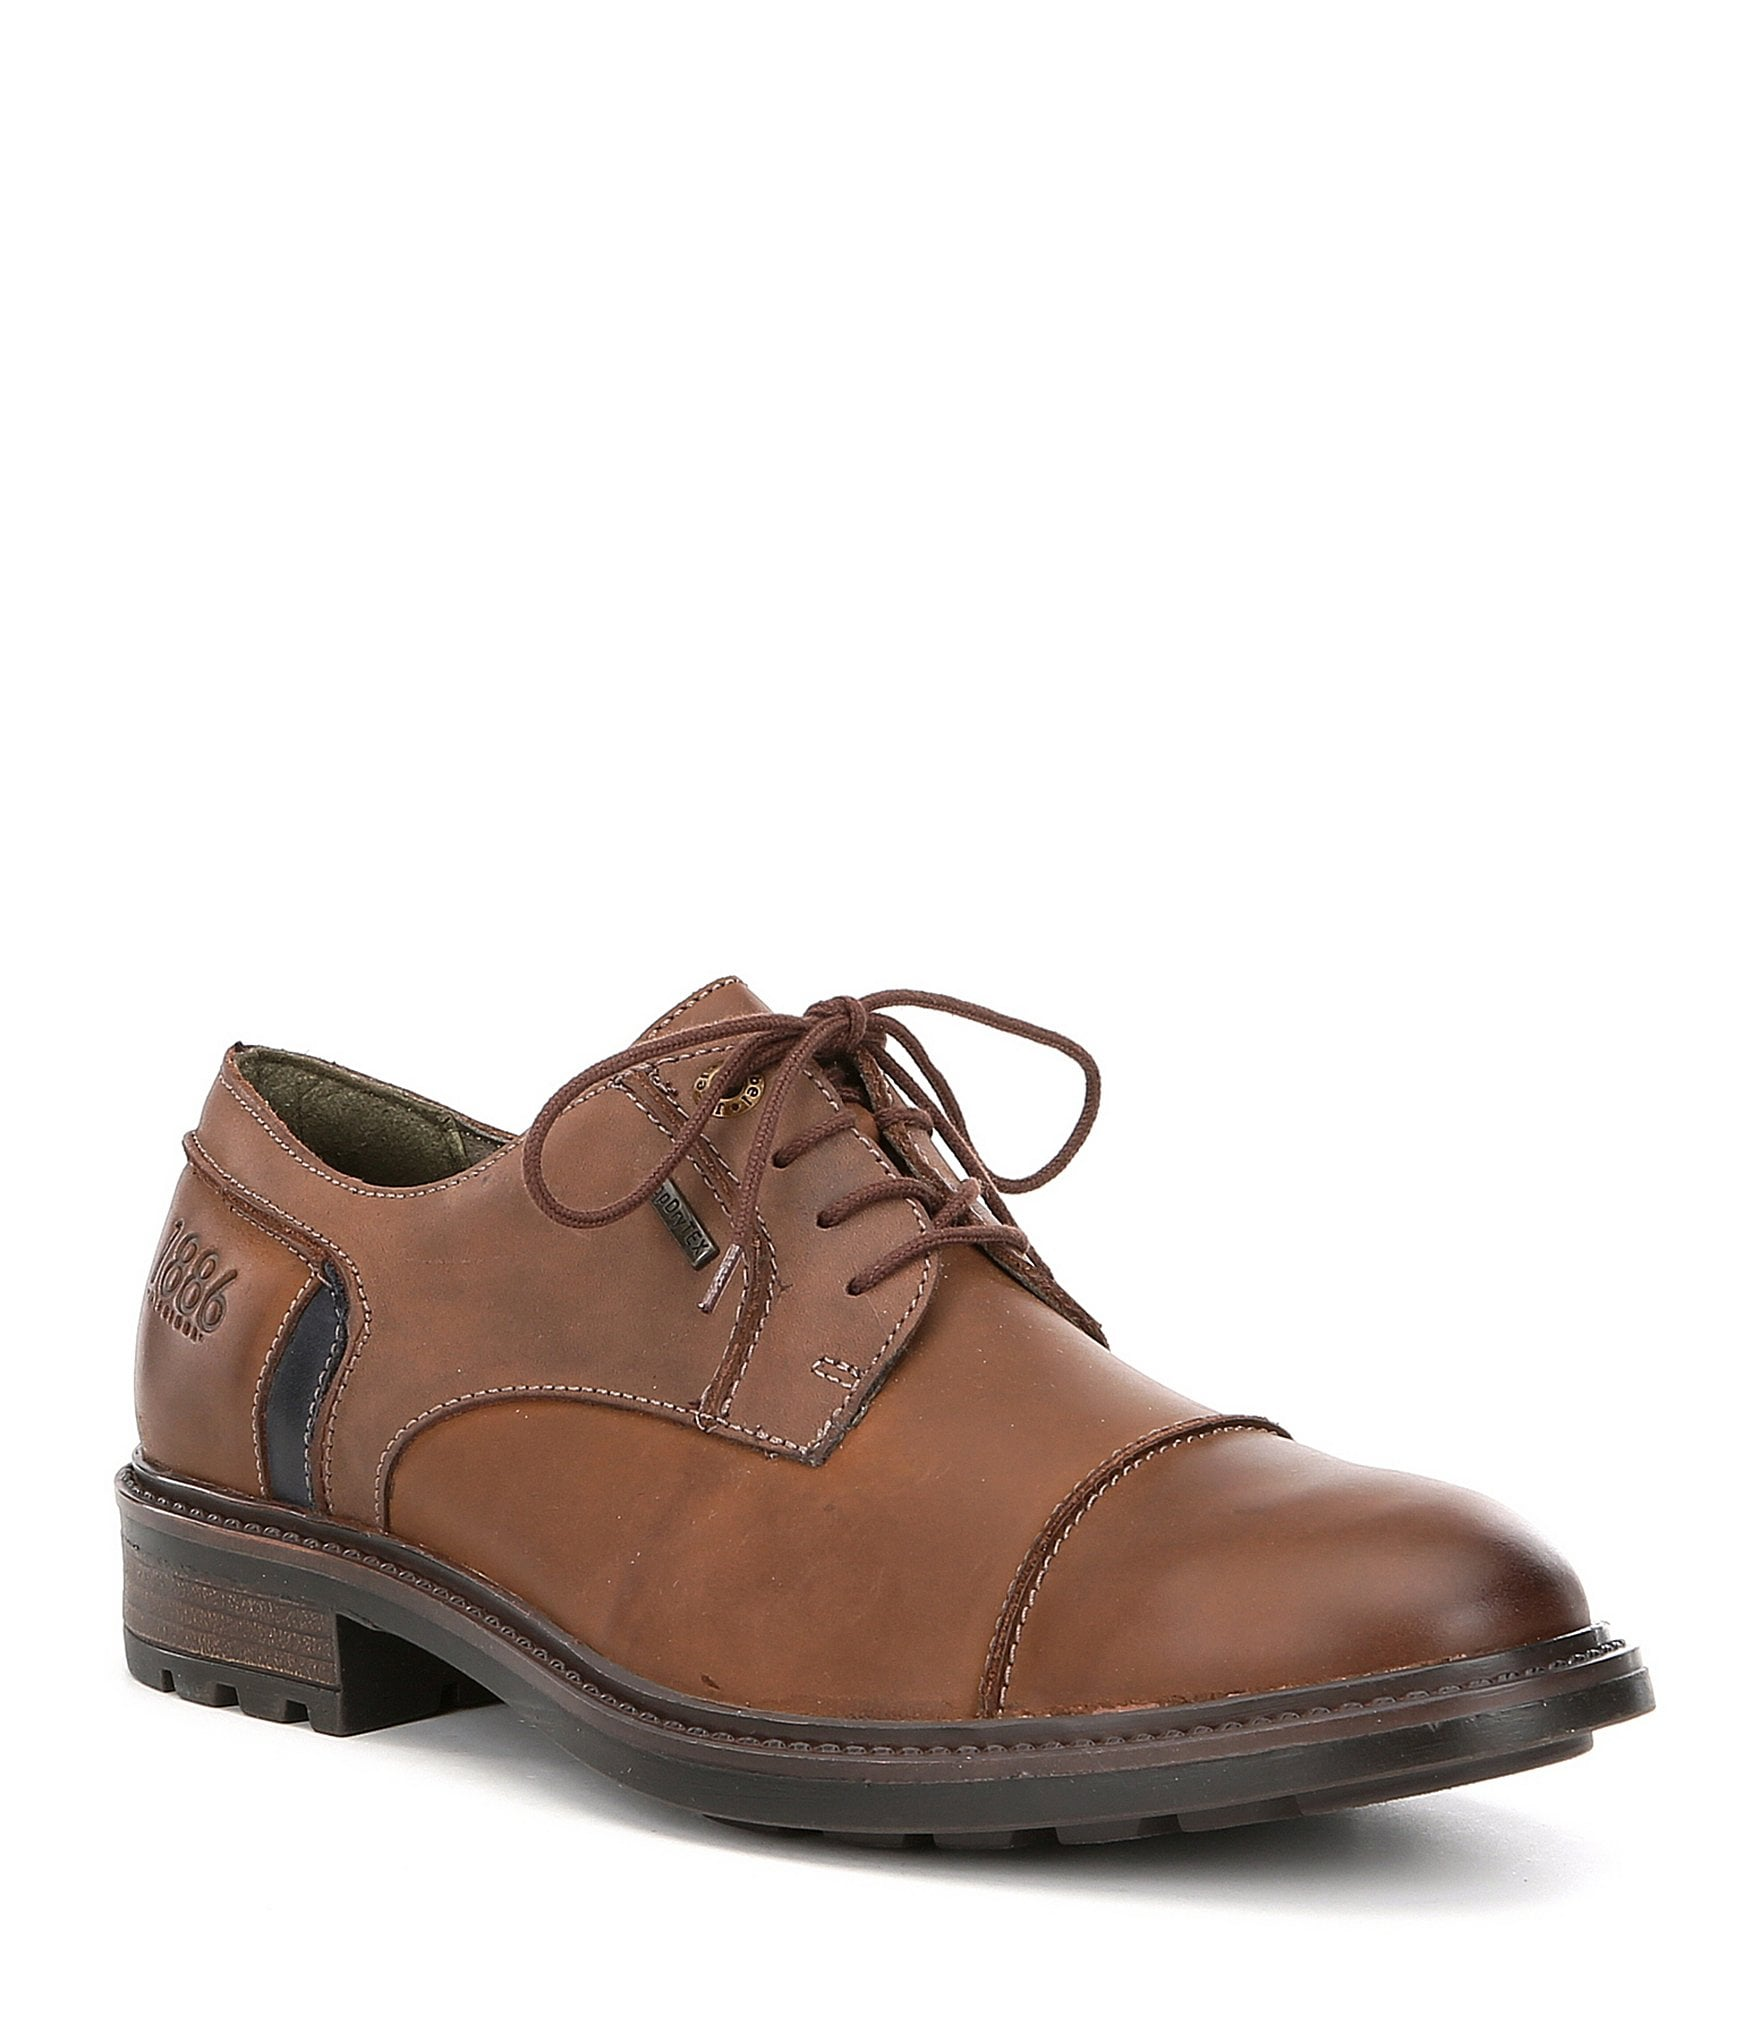 Josef Seibel Mens Shoes Oscar